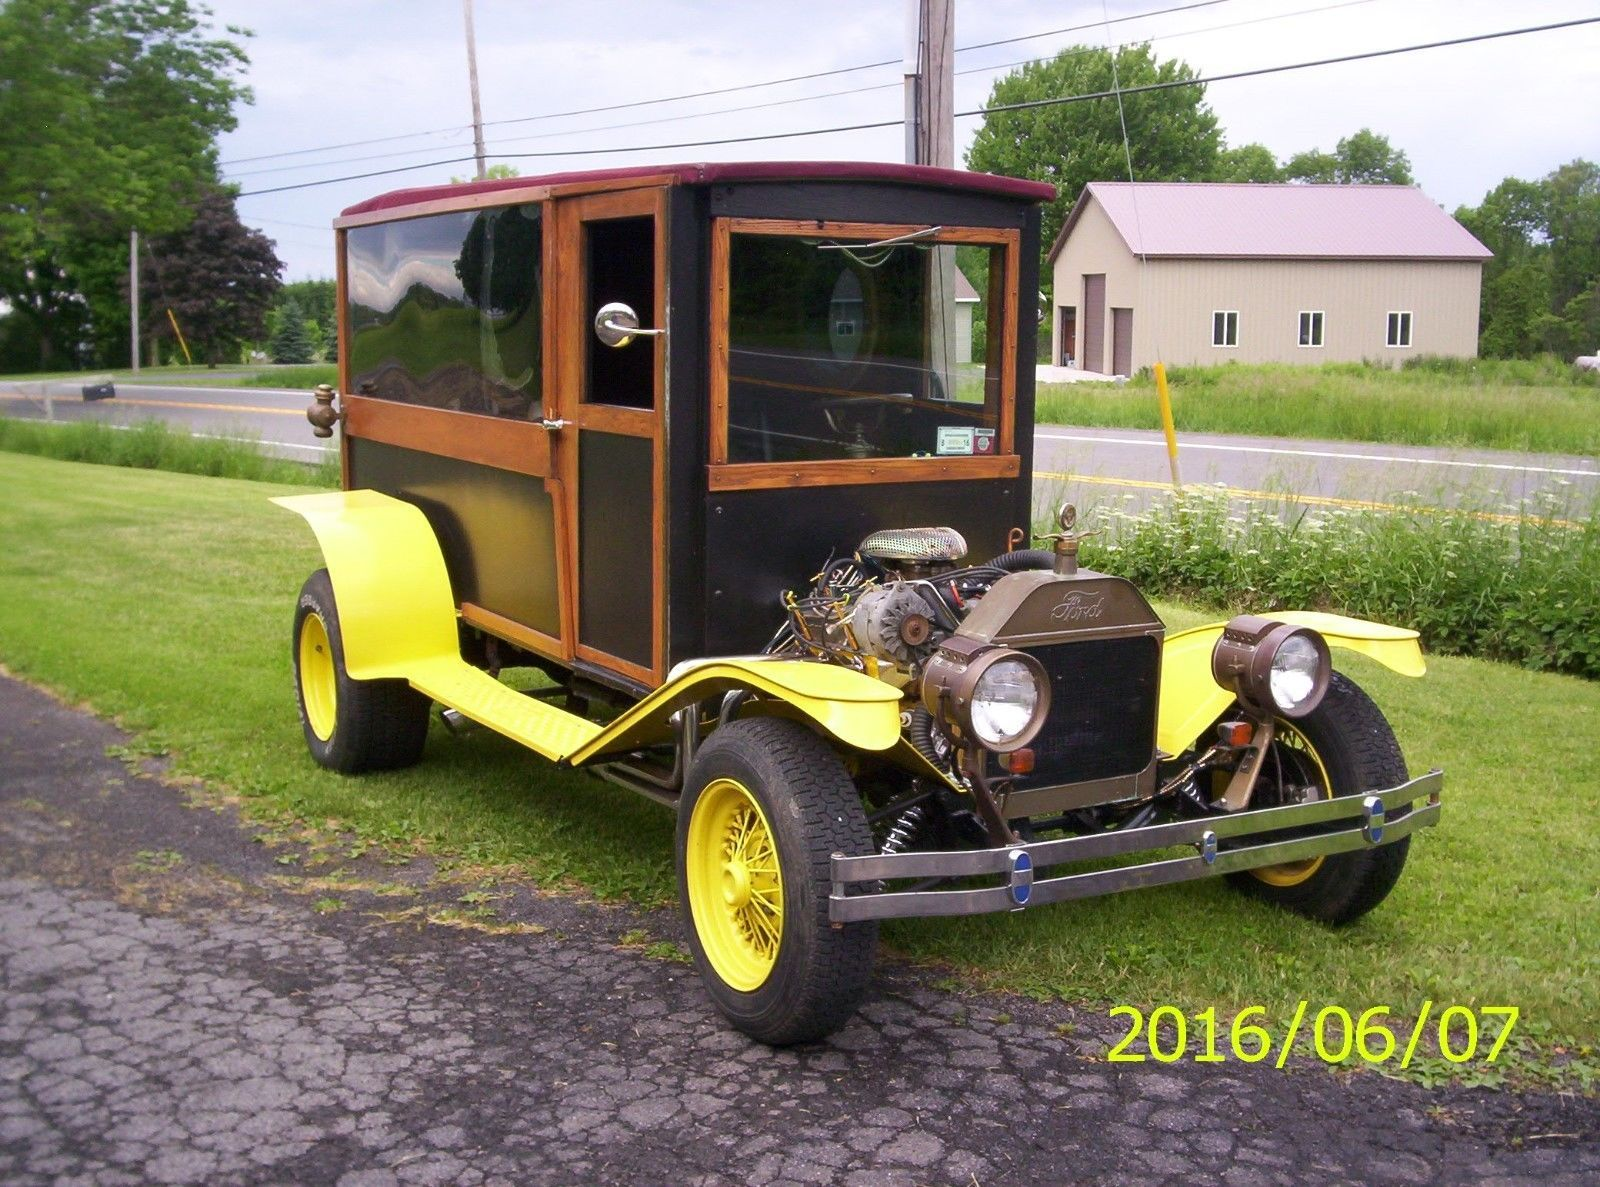 Woody 1910 Ford Model T hot rod | Hot rods for sale | Pinterest